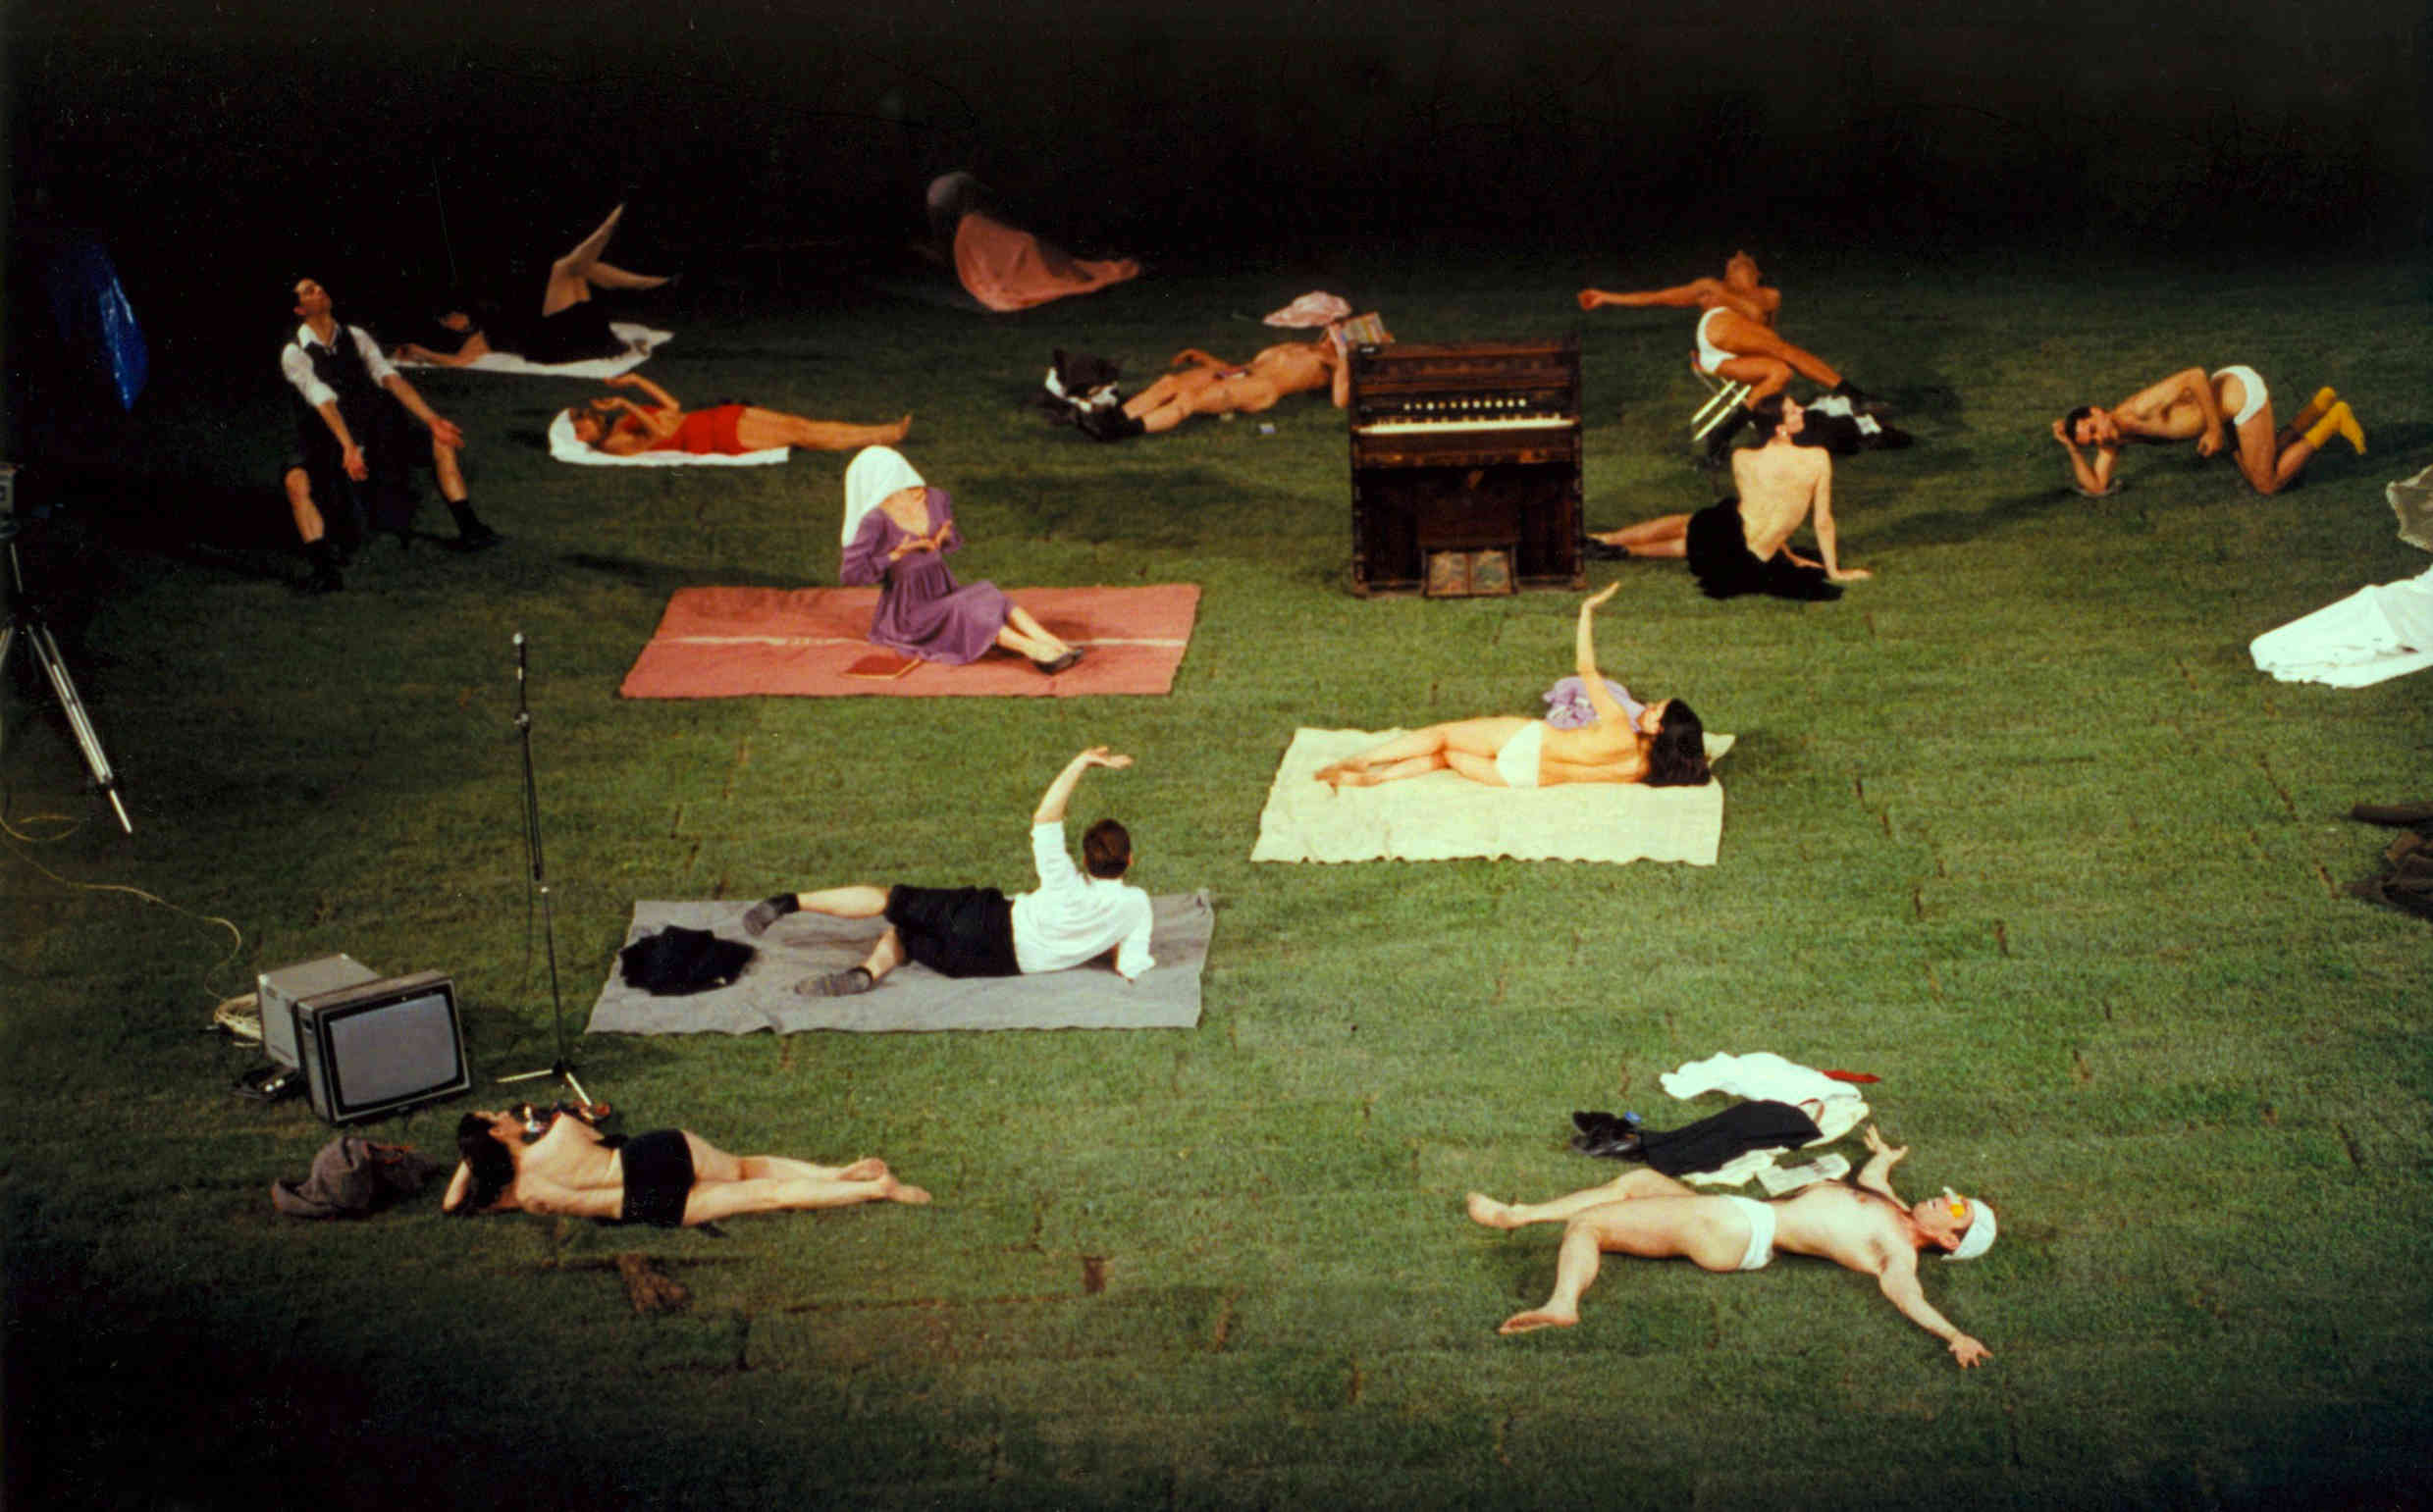 The cast of 1980 by Pina Bausch